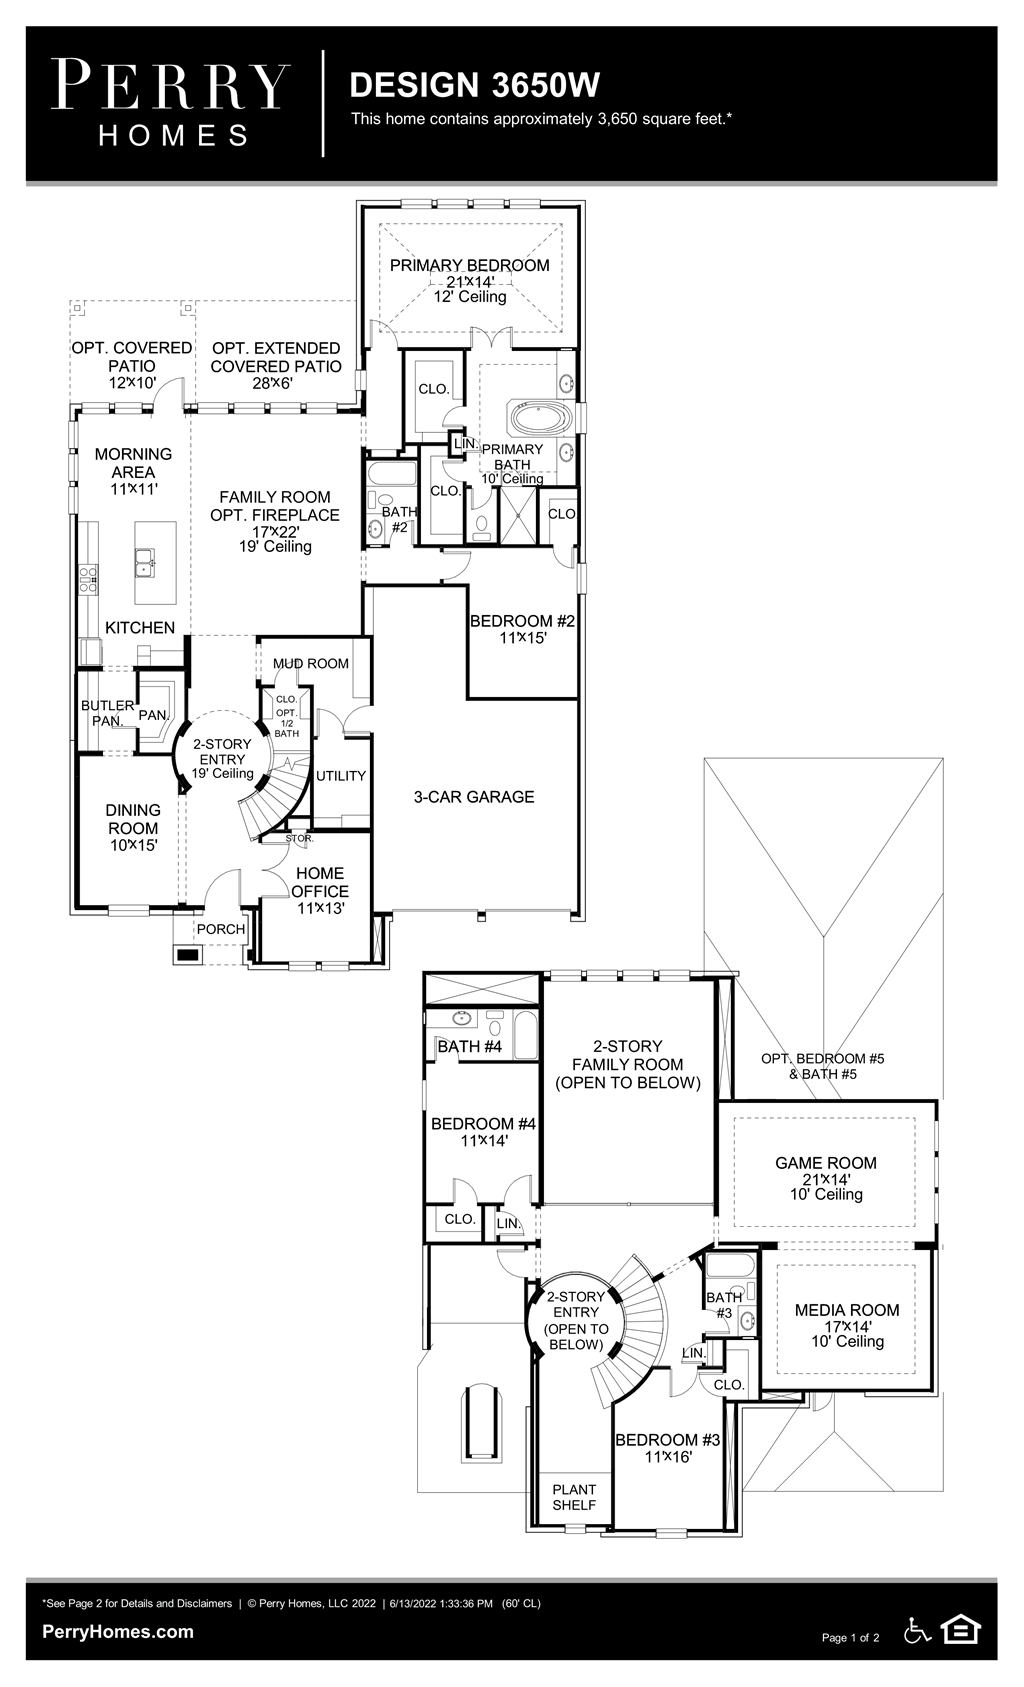 Floor Plan for 3650W